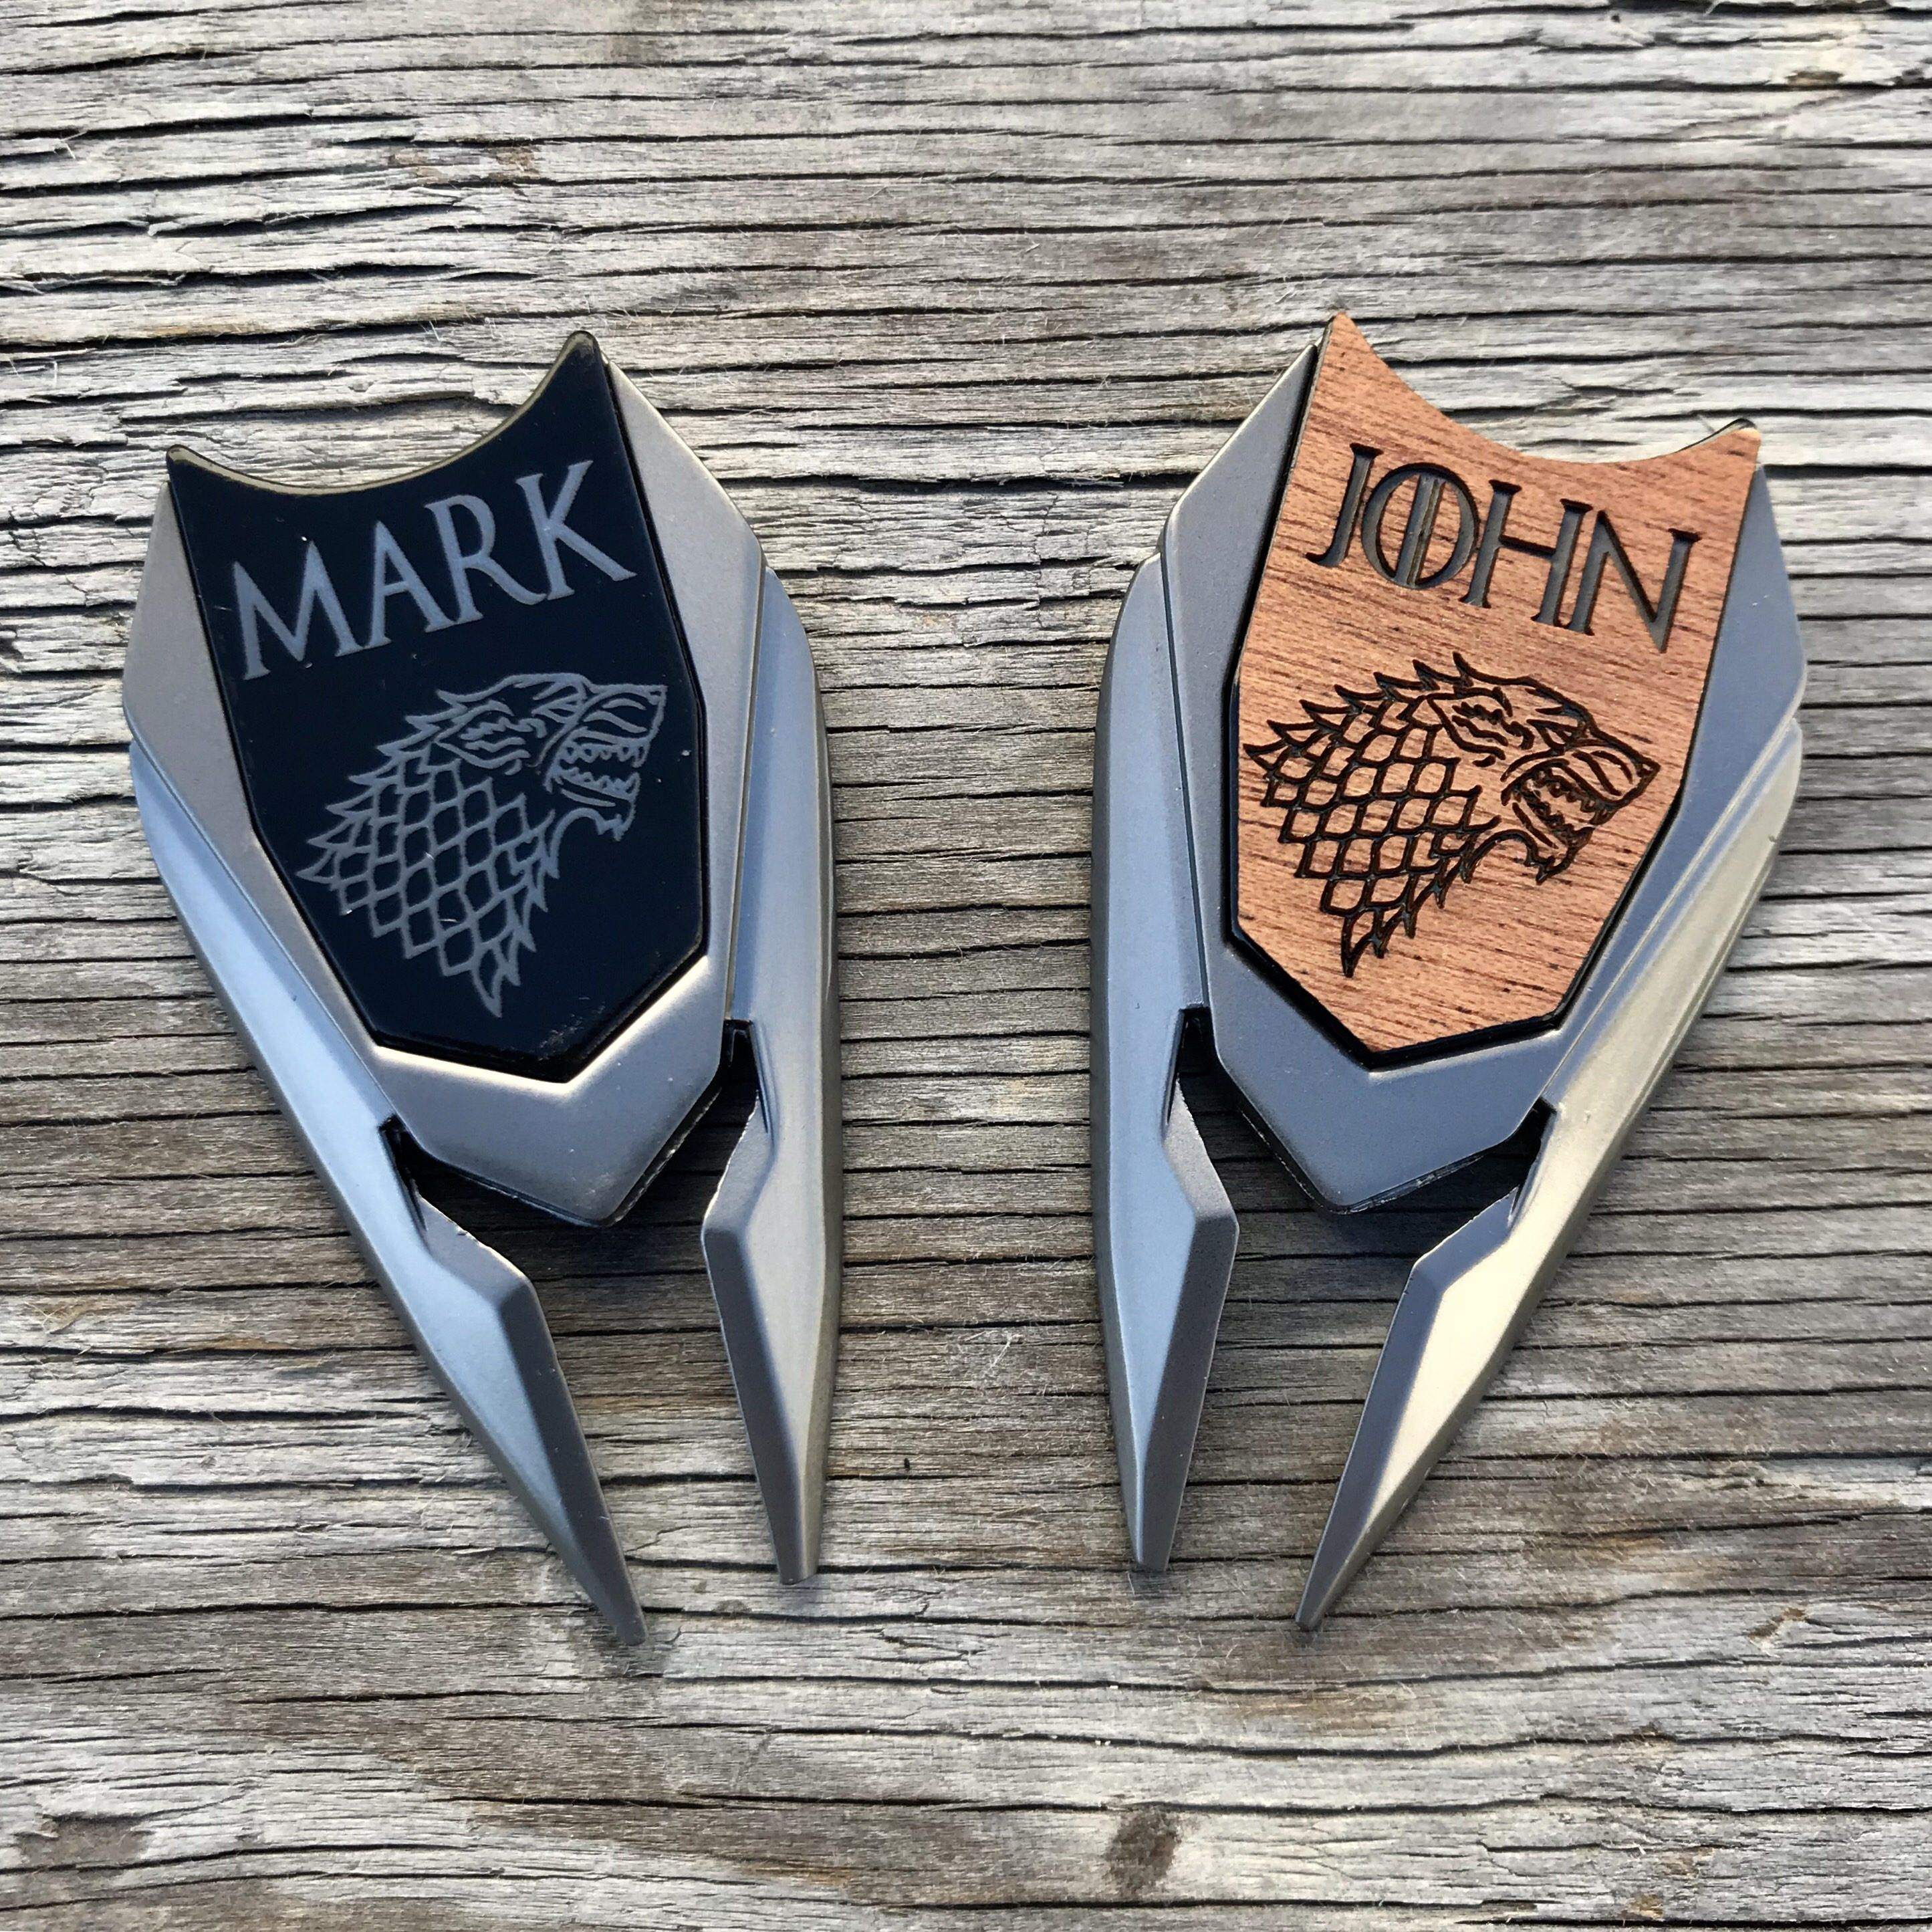 Game Of Thrones Peronalized Golf Ball Marker Divot Tool Divot Tool With Images Personalized Golf Ball Marker Golf Ball Gift Golf Gifts For Men